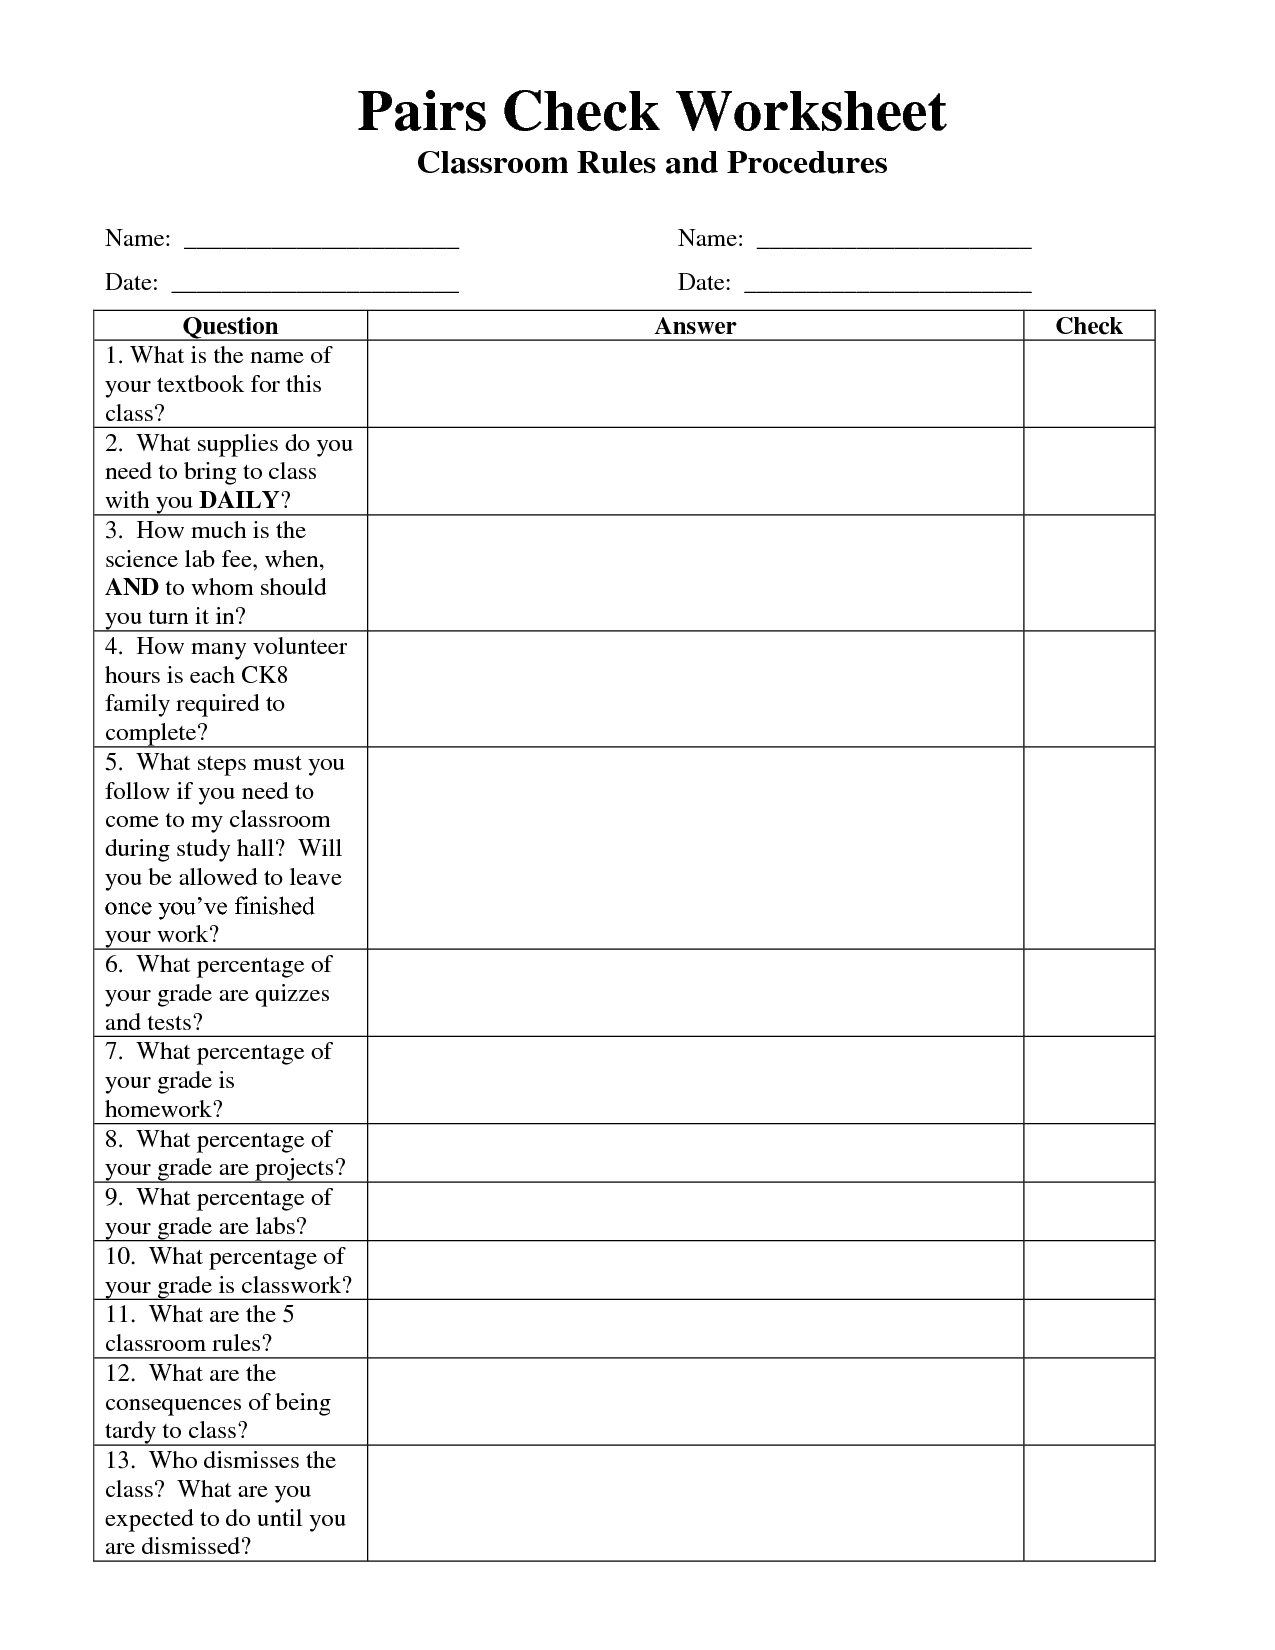 16 Best Images Of Class Rules Worksheet